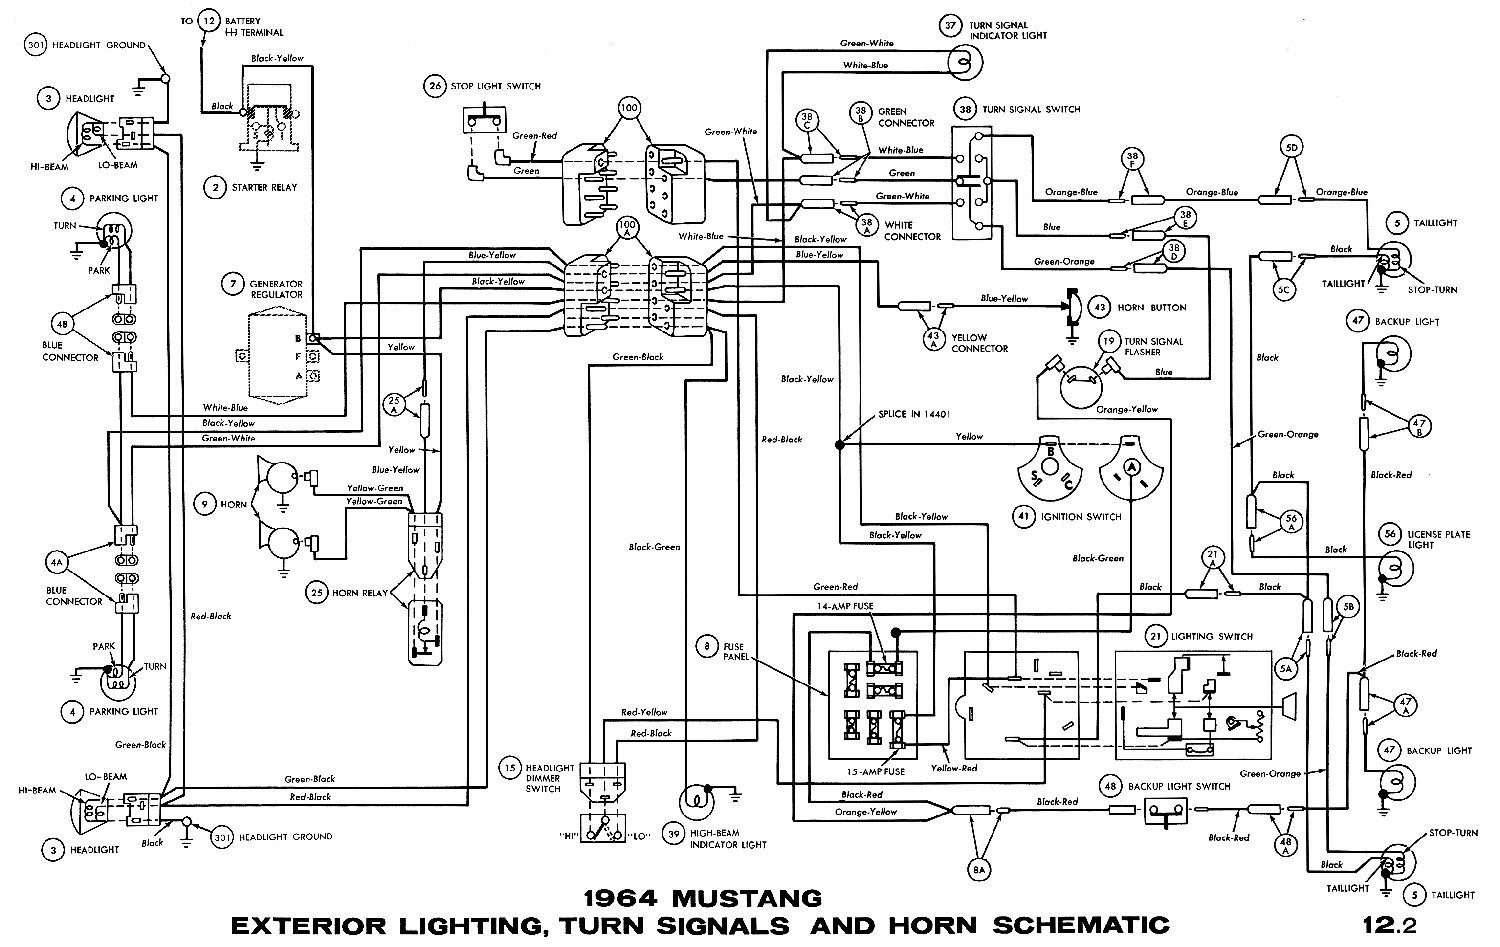 1966 mustang coupe wiring diagram wiring data 1966 mustang engine schematic wire center u2022 289 wiring diagram 1966 mustang coupe wiring diagram asfbconference2016 Gallery